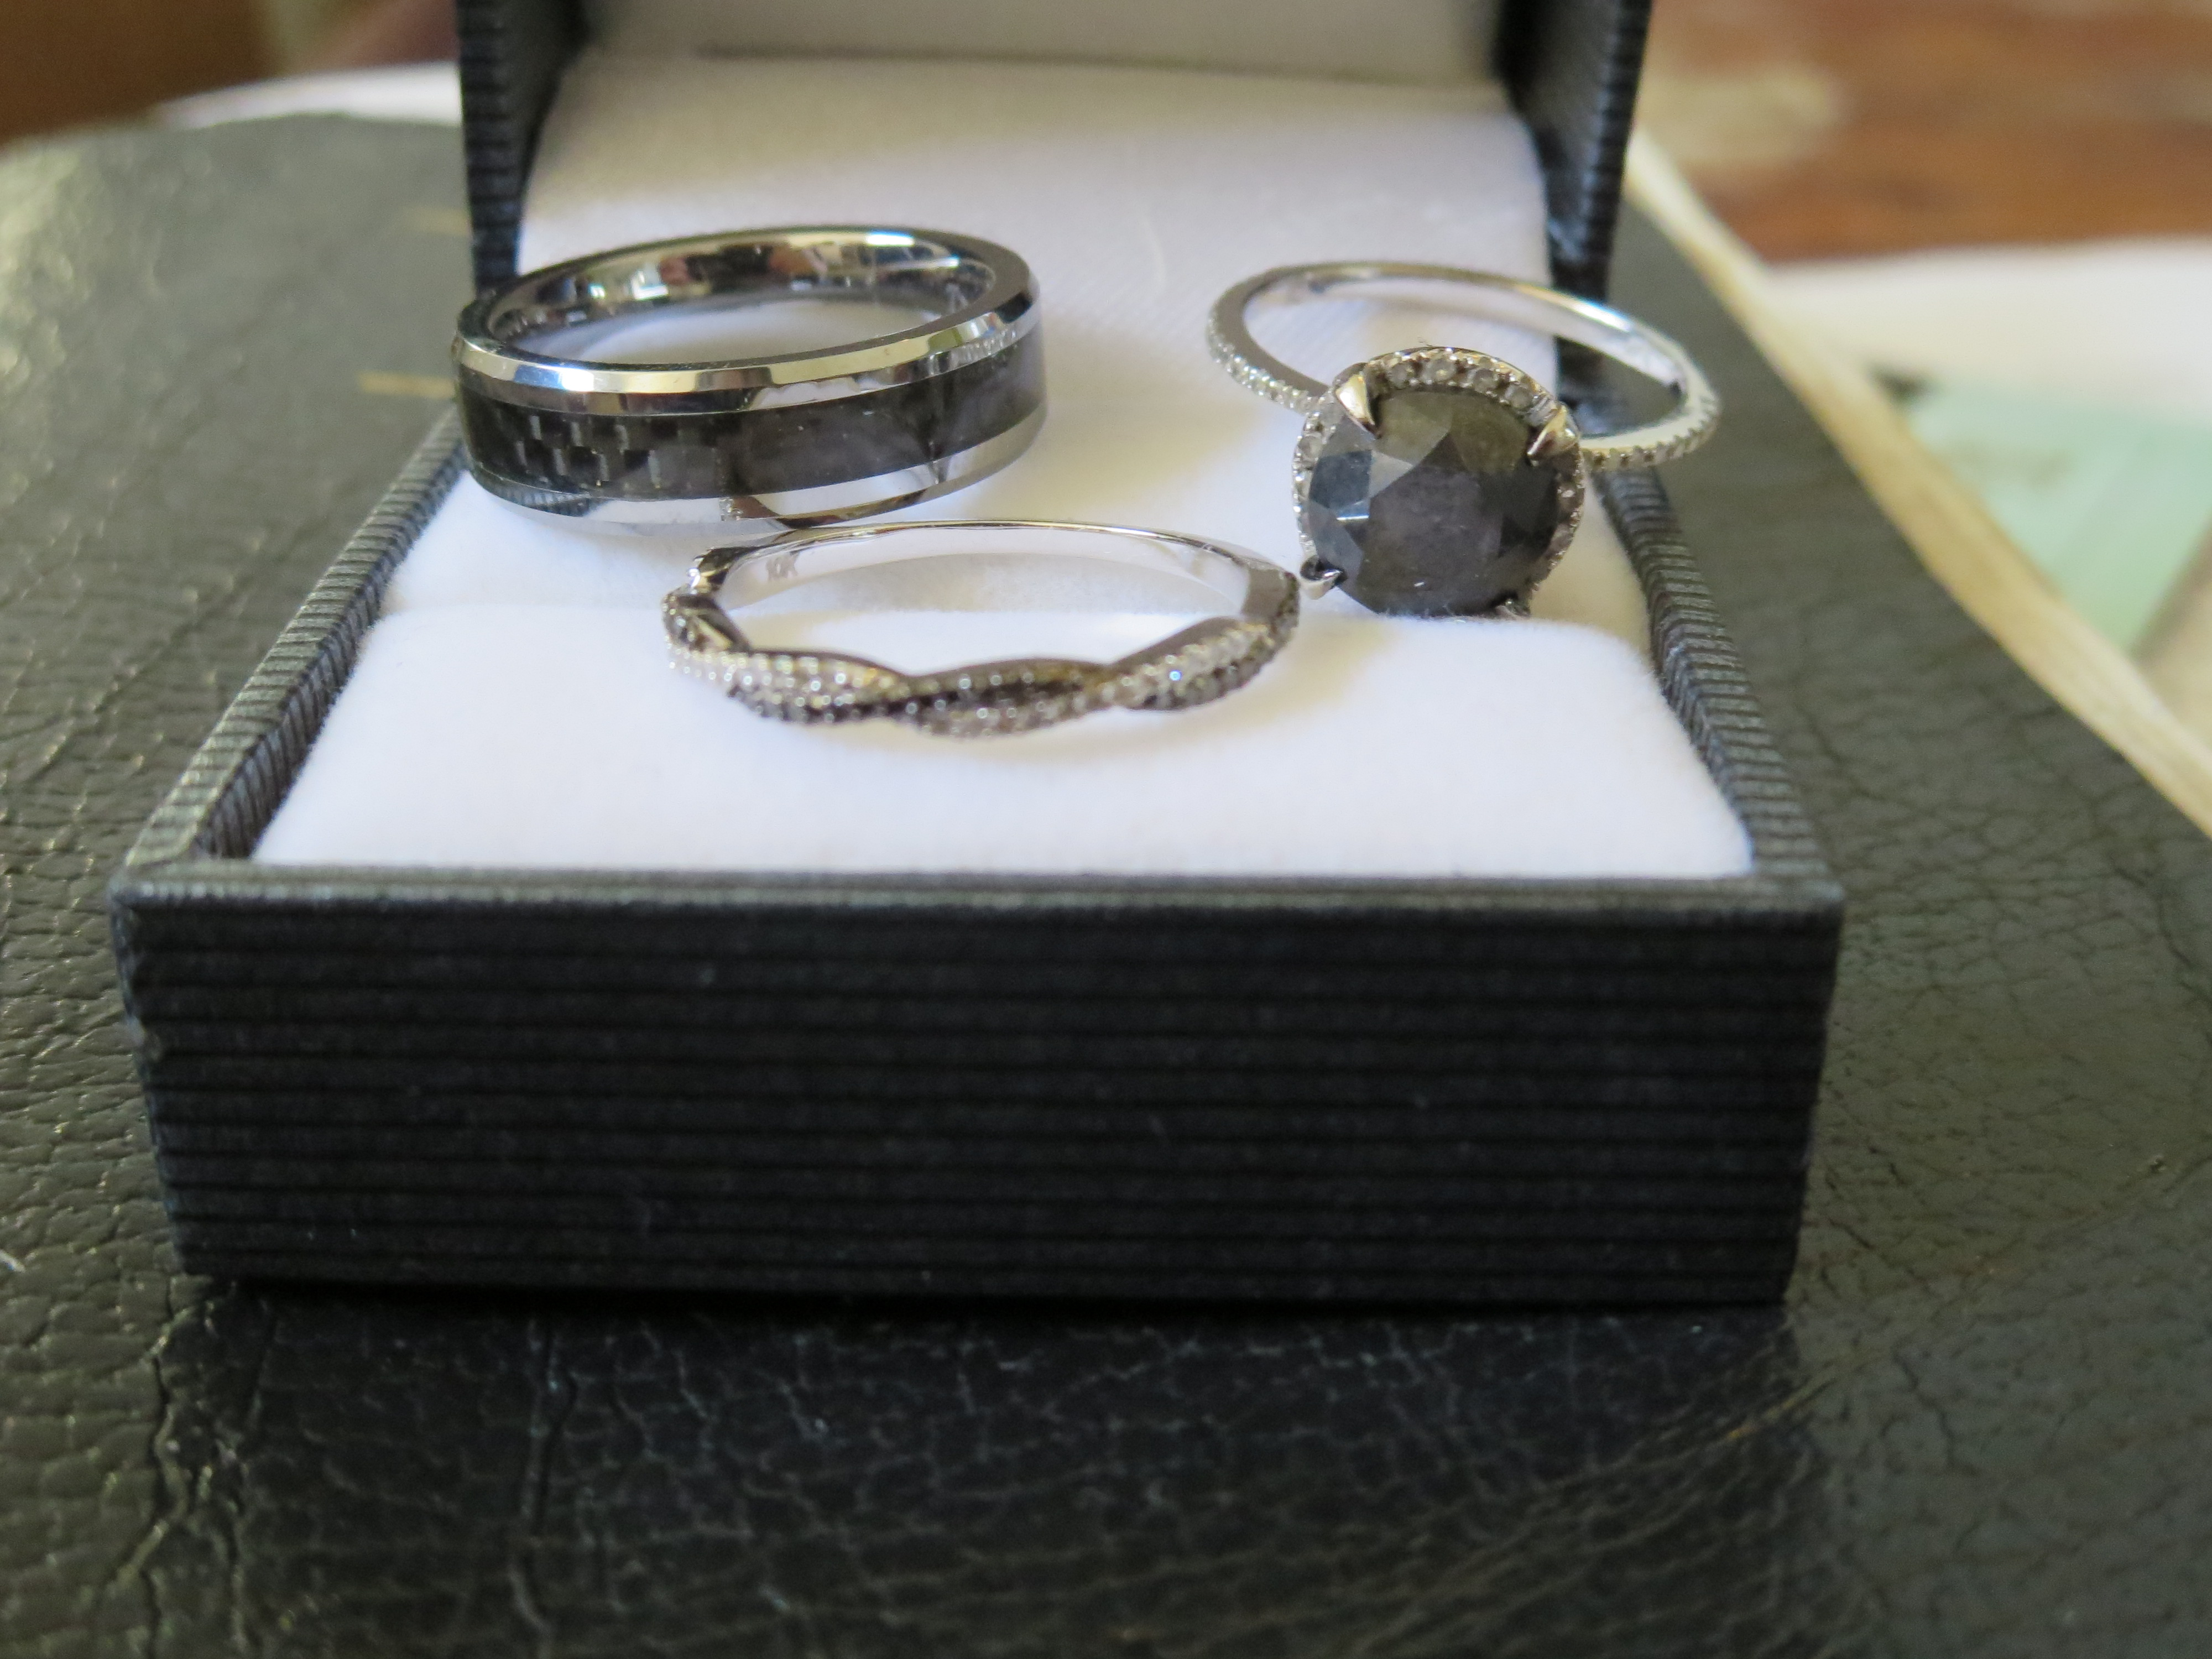 july brides got your wedding bands yet carbon fiber wedding bands Here s our His is band is black carbon fiber My engagement ring is a black and white diamond halo and my band is a black and white diamond twist